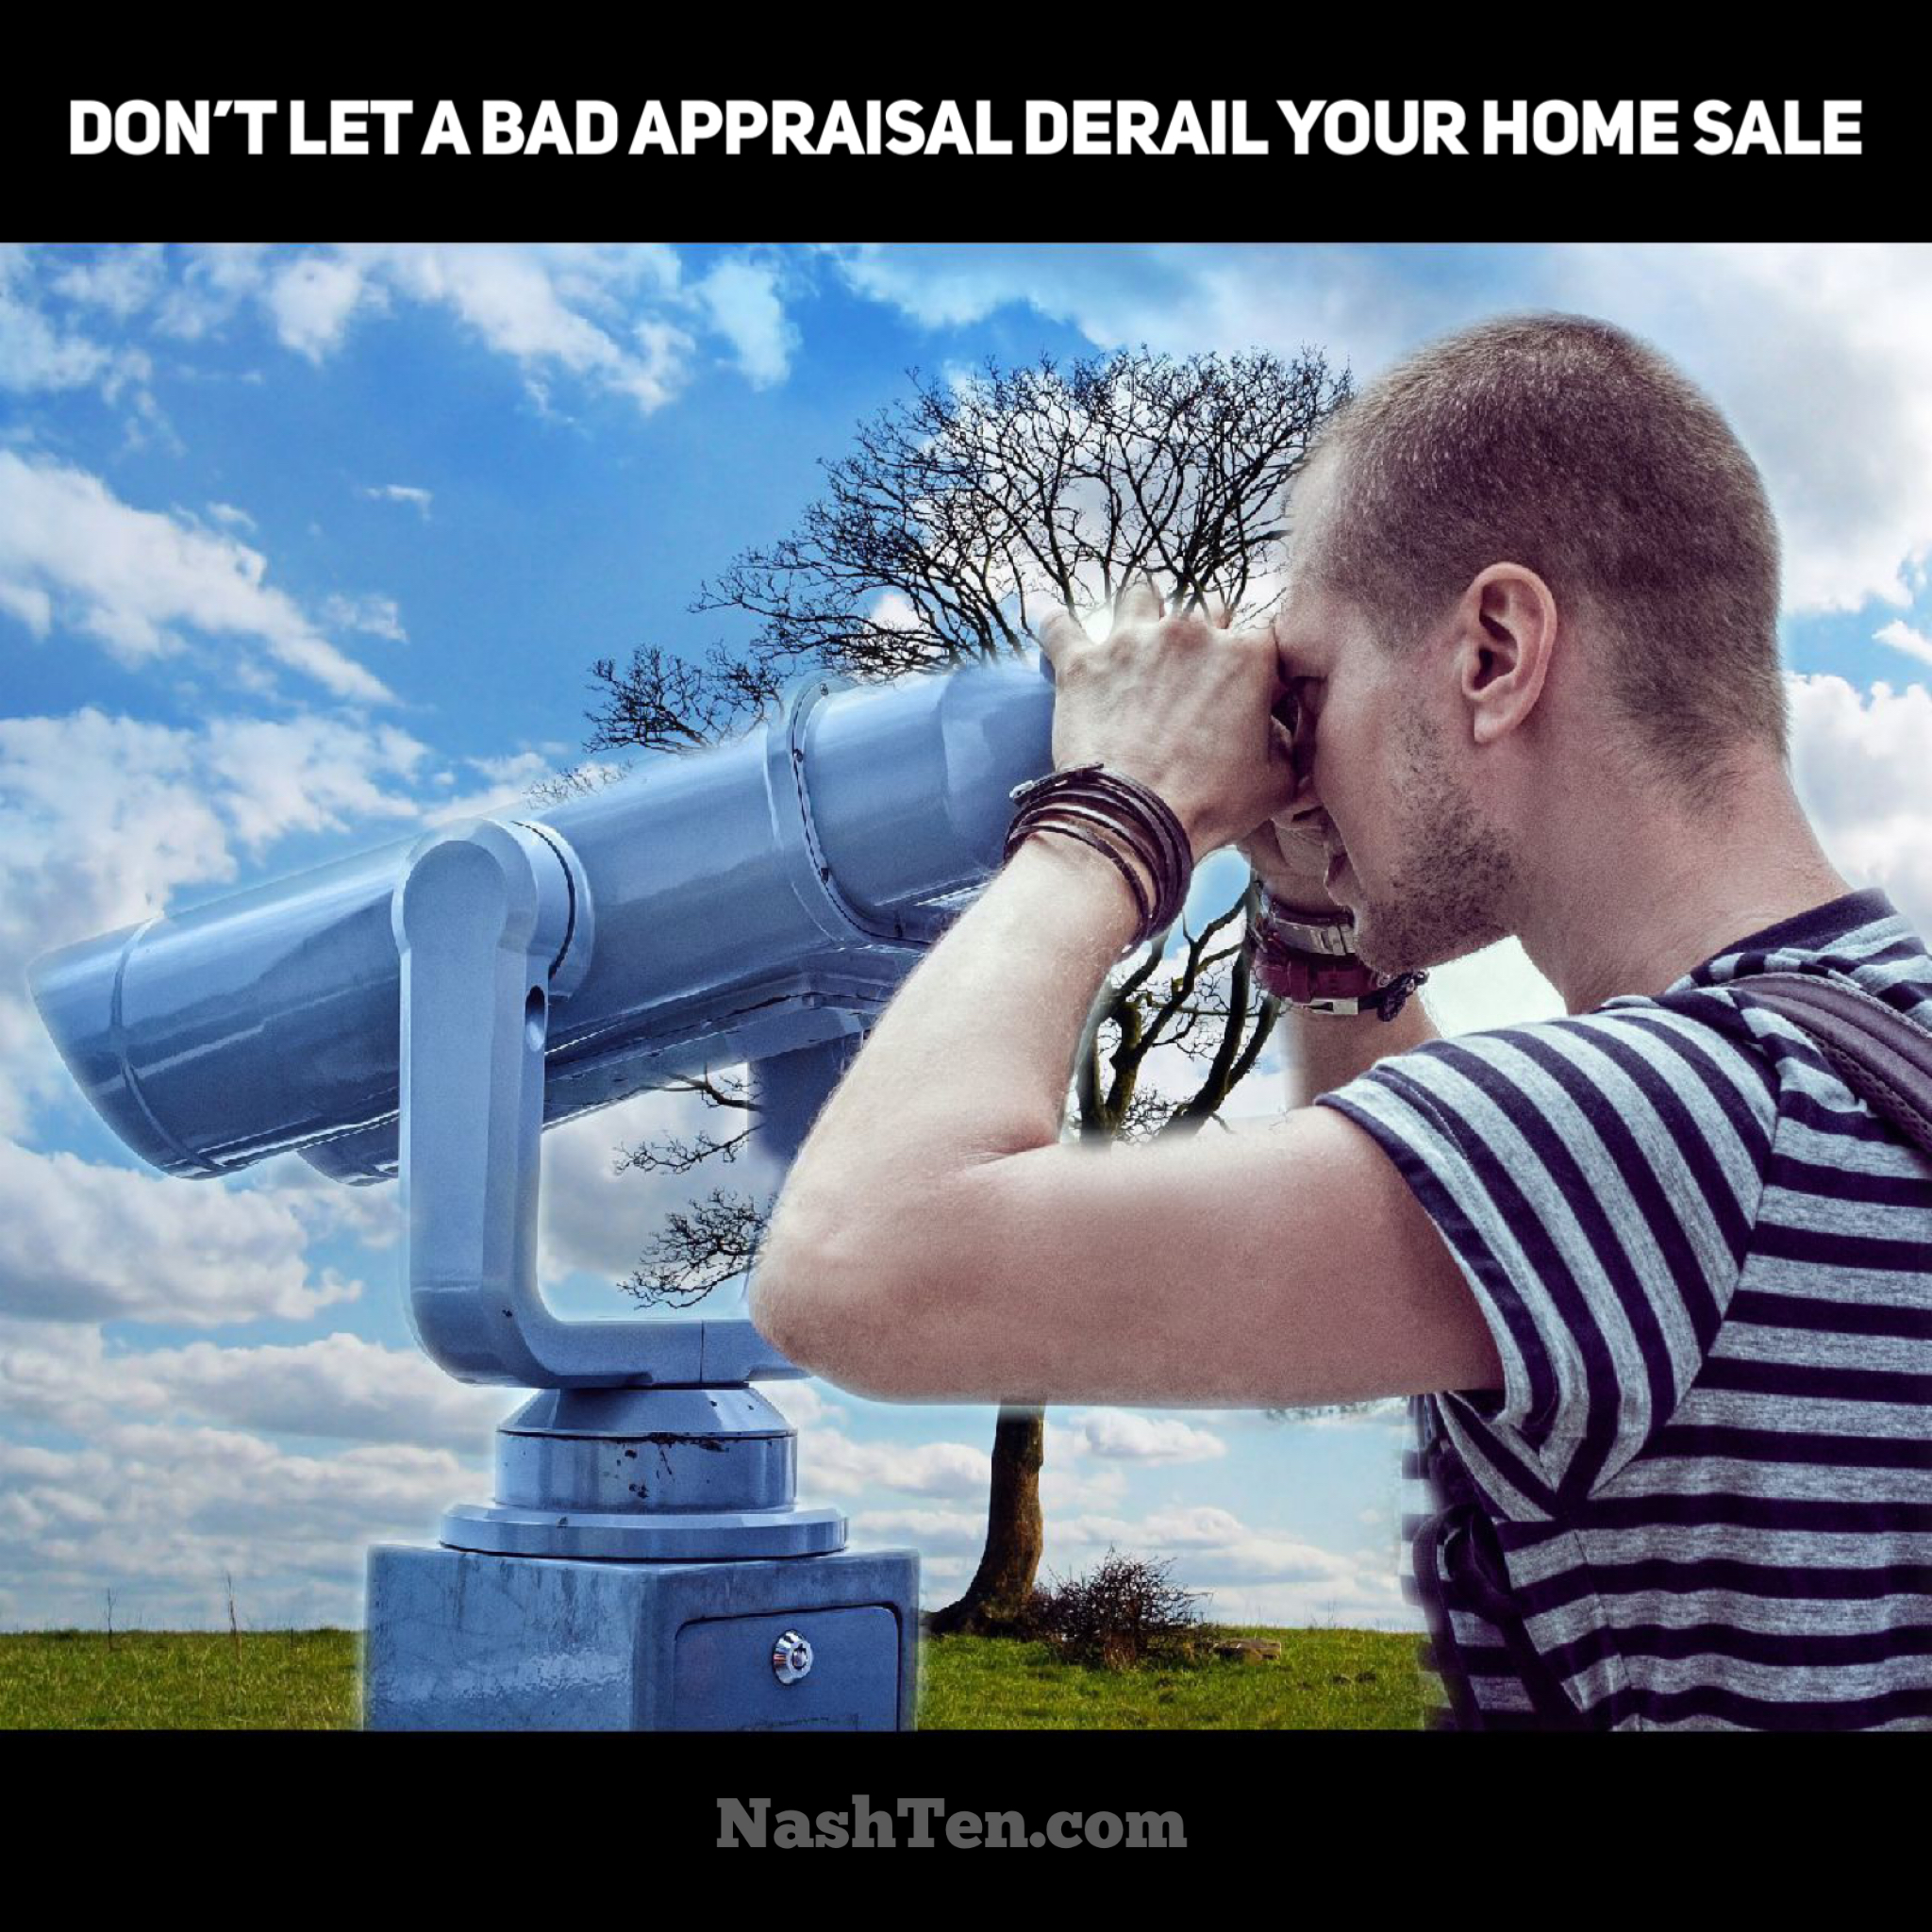 Don't let a bad appraisal crash your home sale